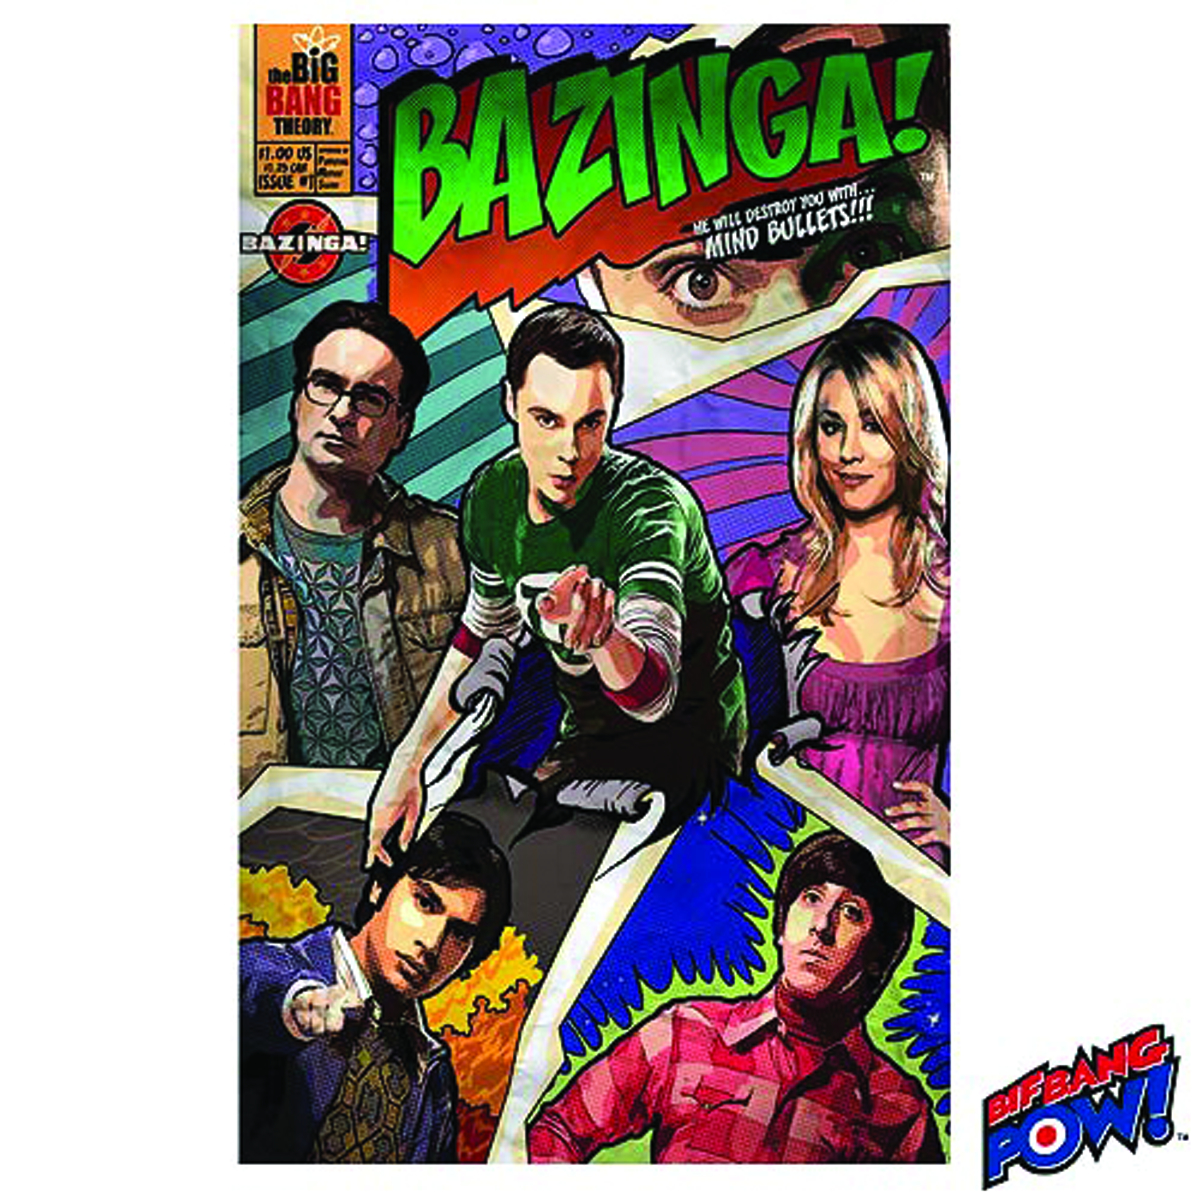 BIG BANG THEORY BAZINGA JOURNAL